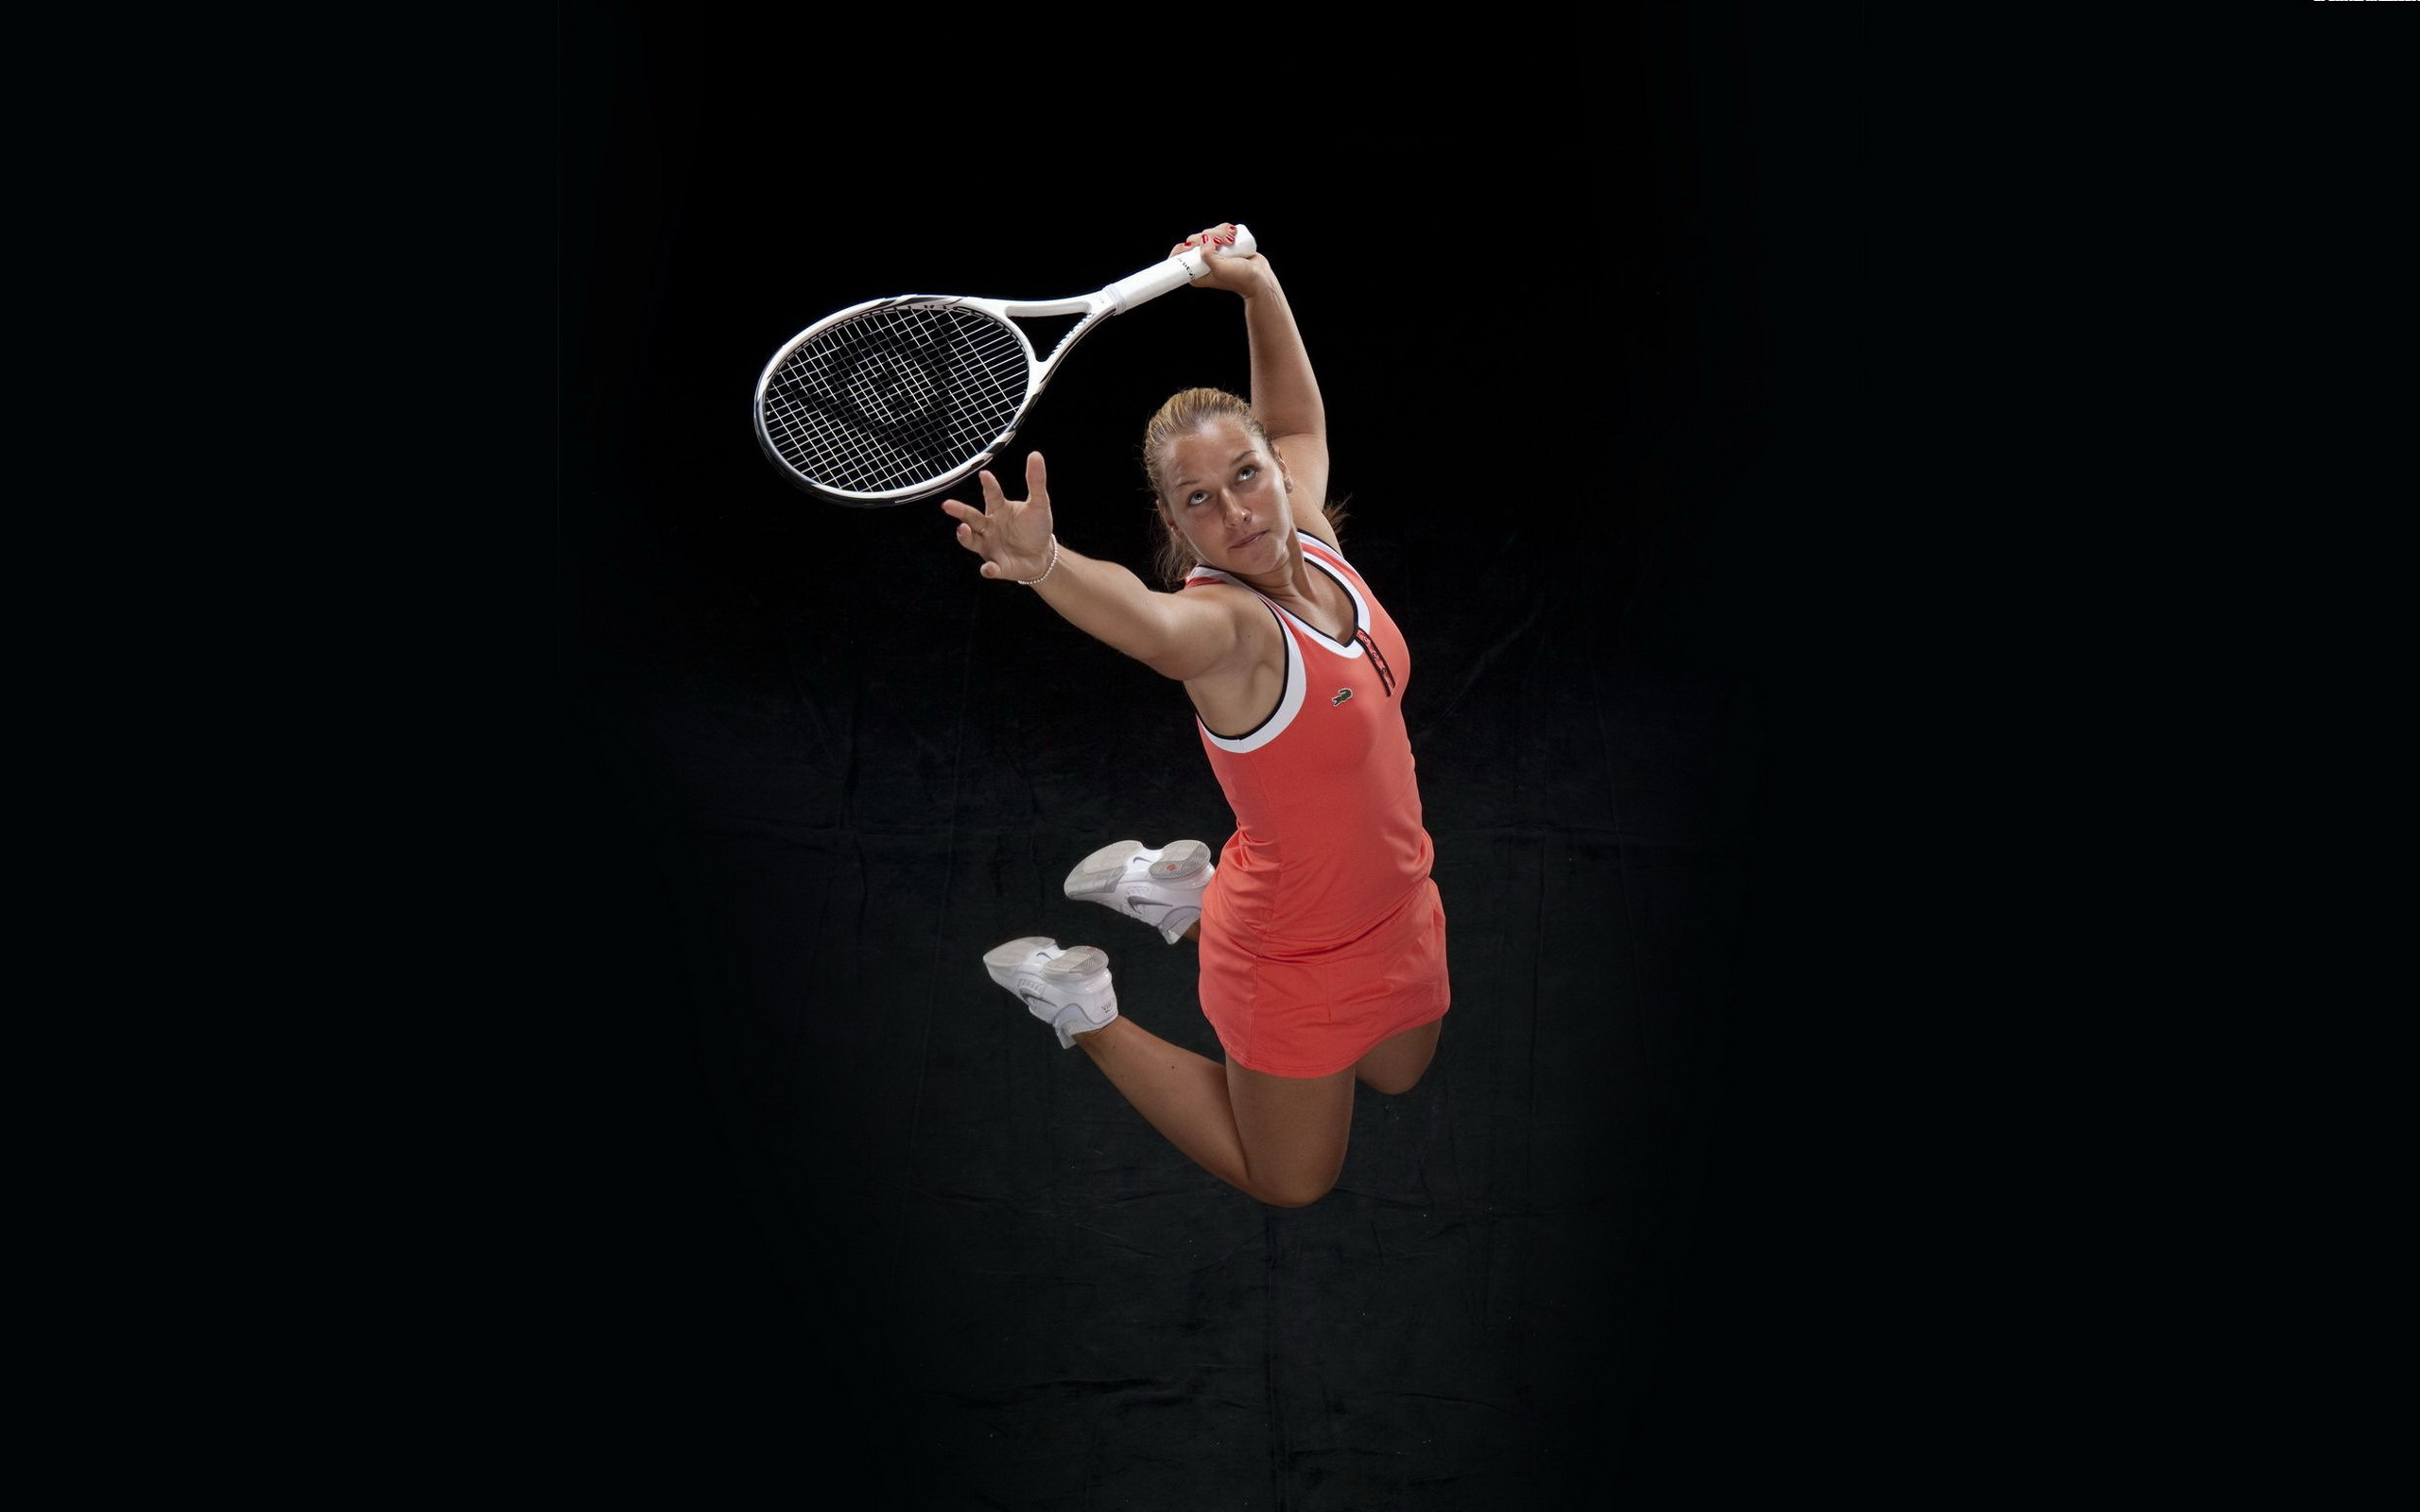 awesome-Tennis-Background-Computer-wallpaper-wp3602870-1